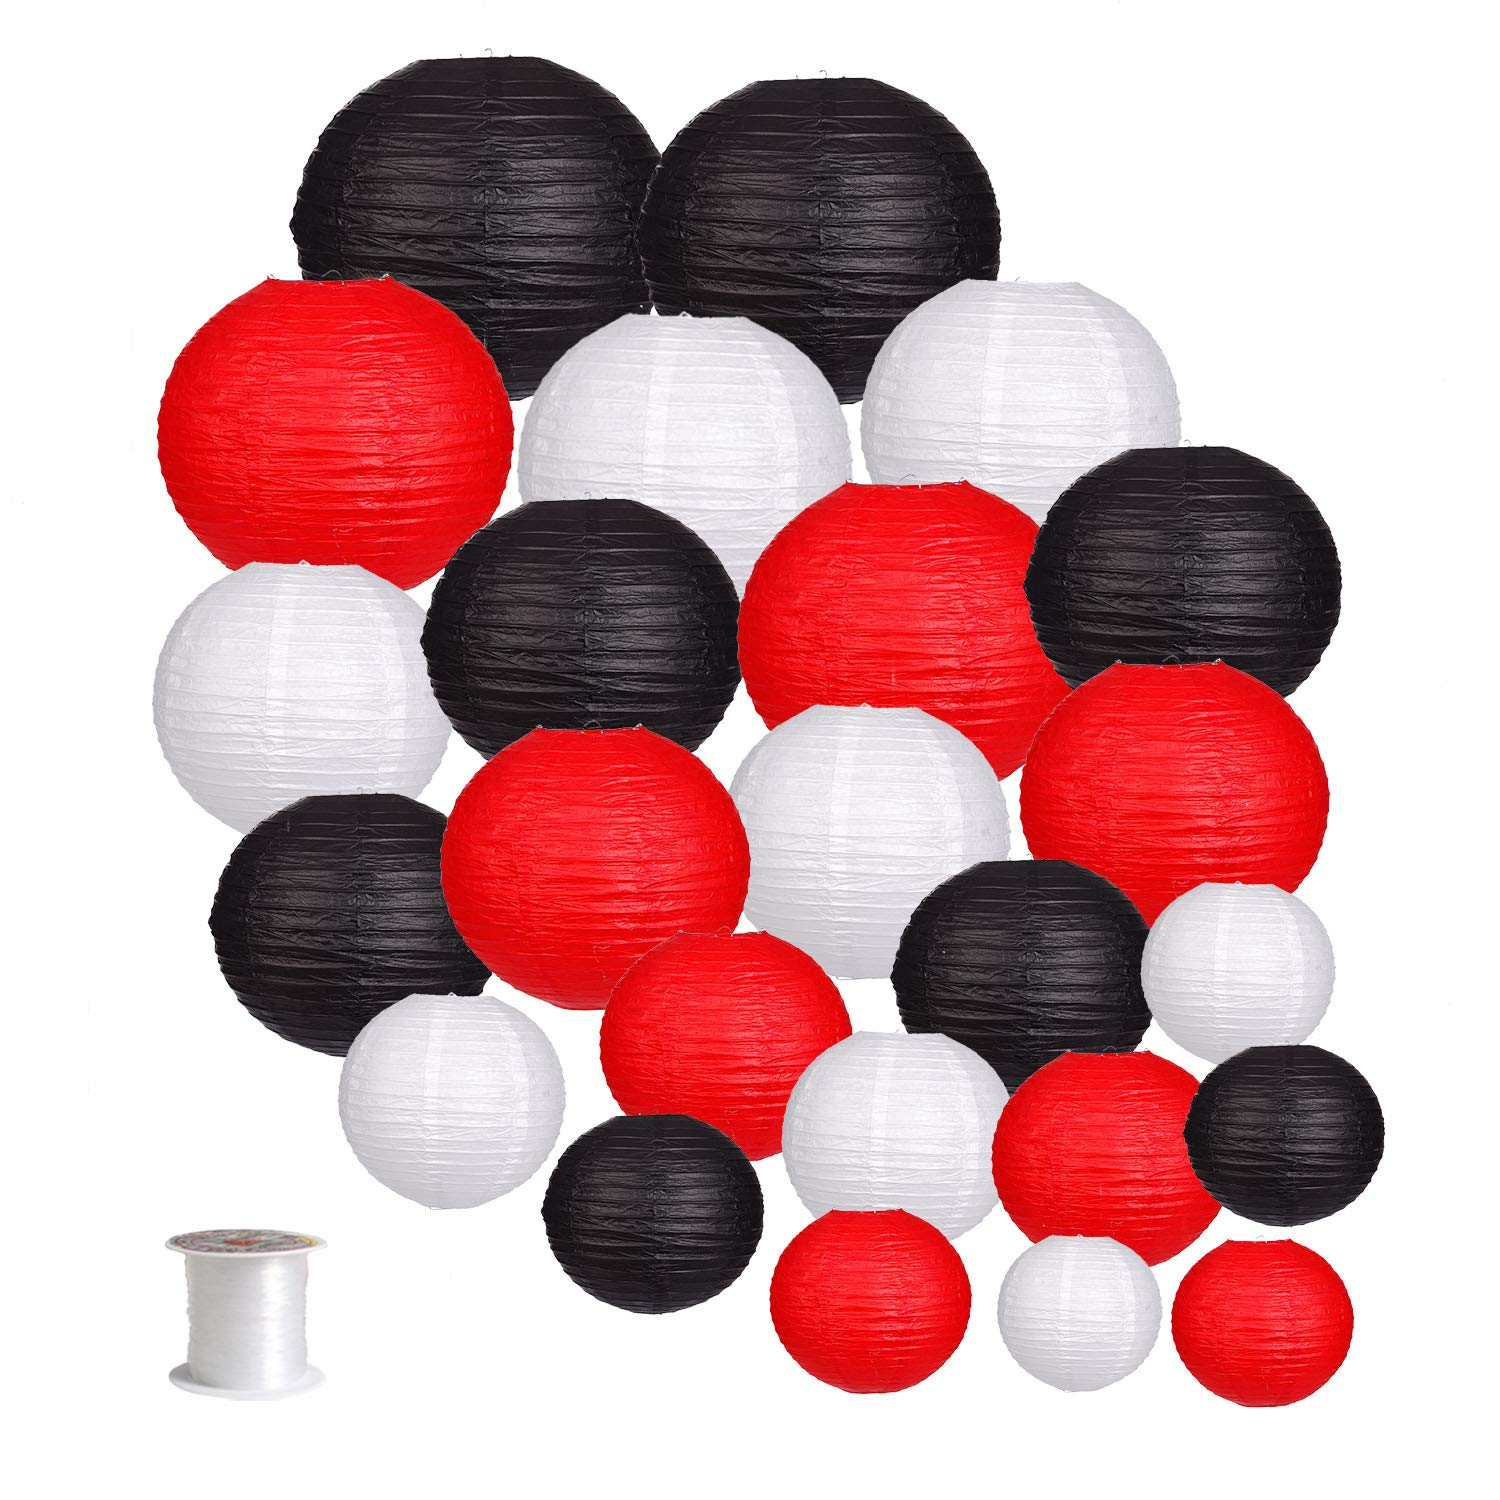 24pcs Round Paper Lanterns for Wedding Birthday Party Baby Showers Decoration Black/Red